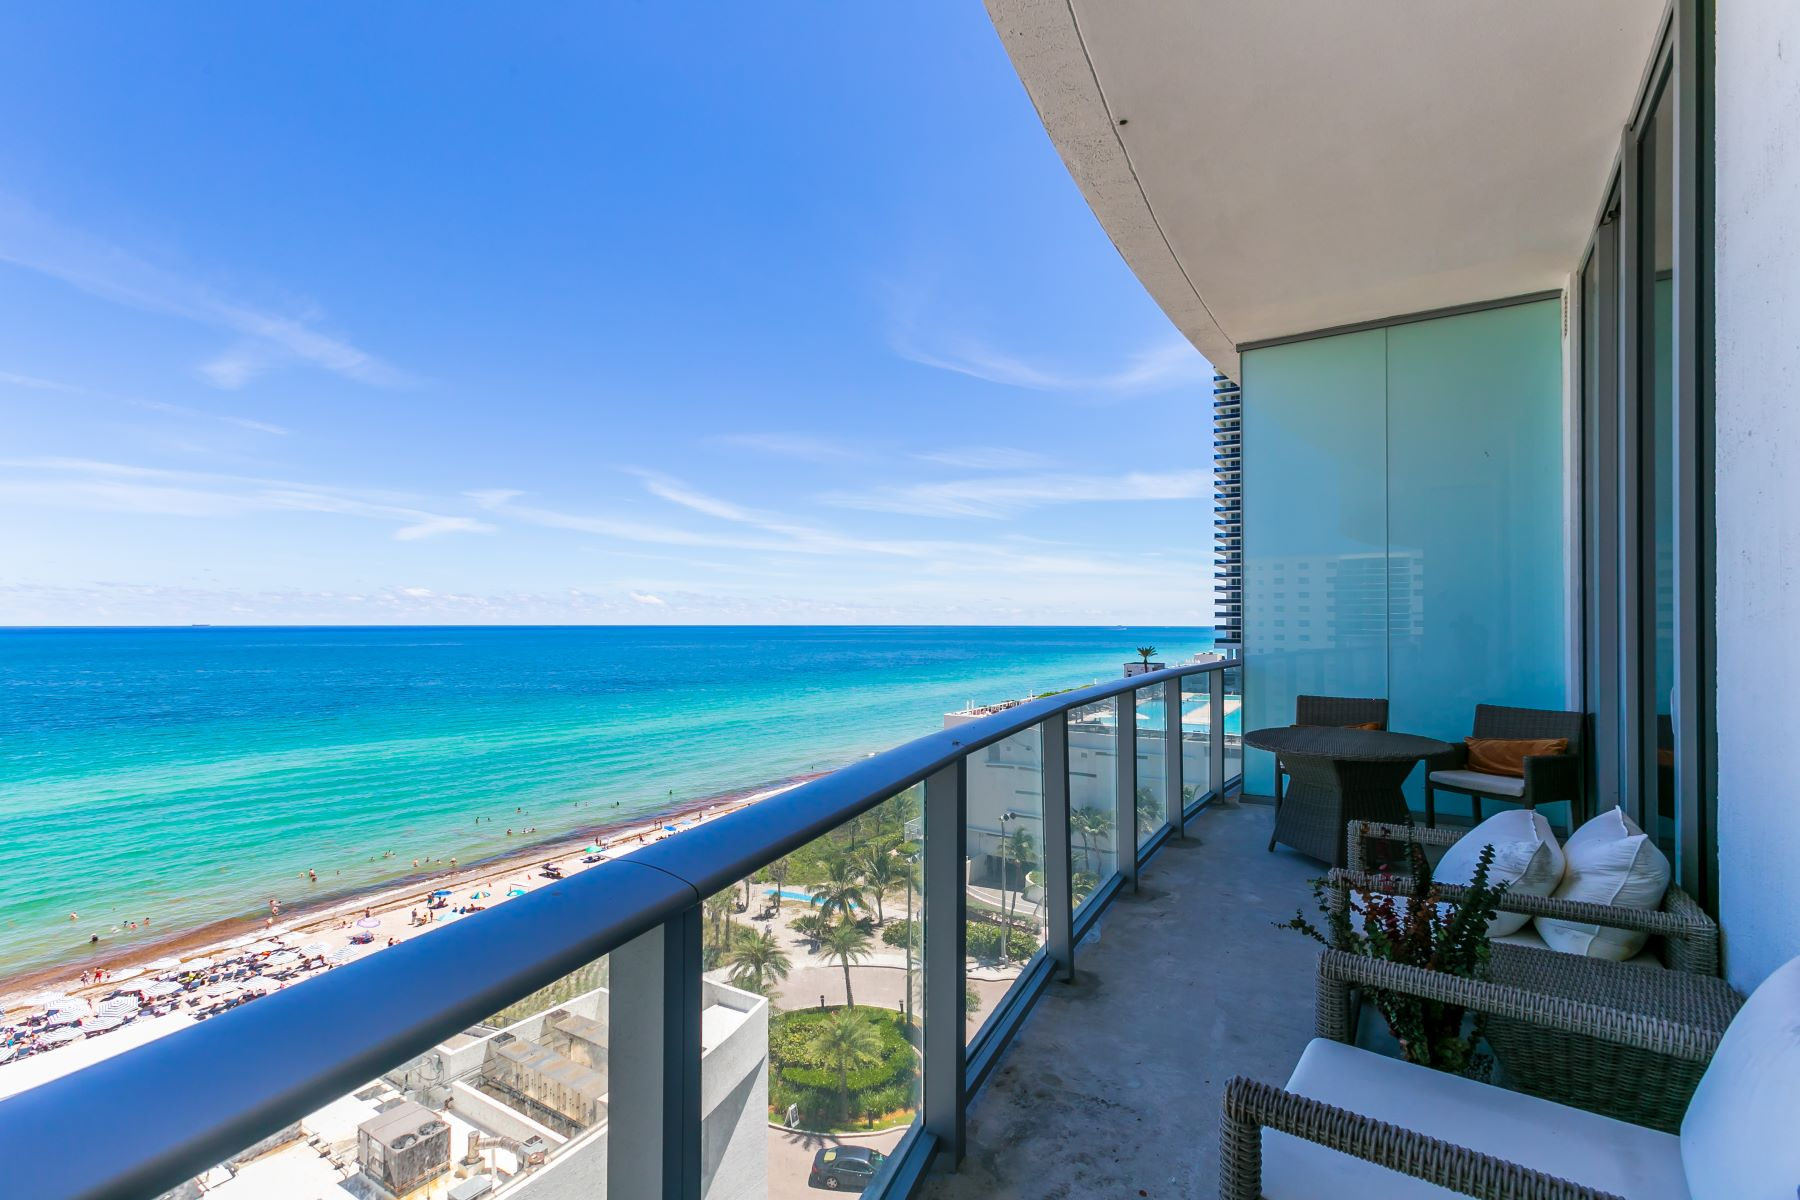 Condominiums for Sale at 4111 S Ocean Dr 802, Hollywood, Florida 33019 United States